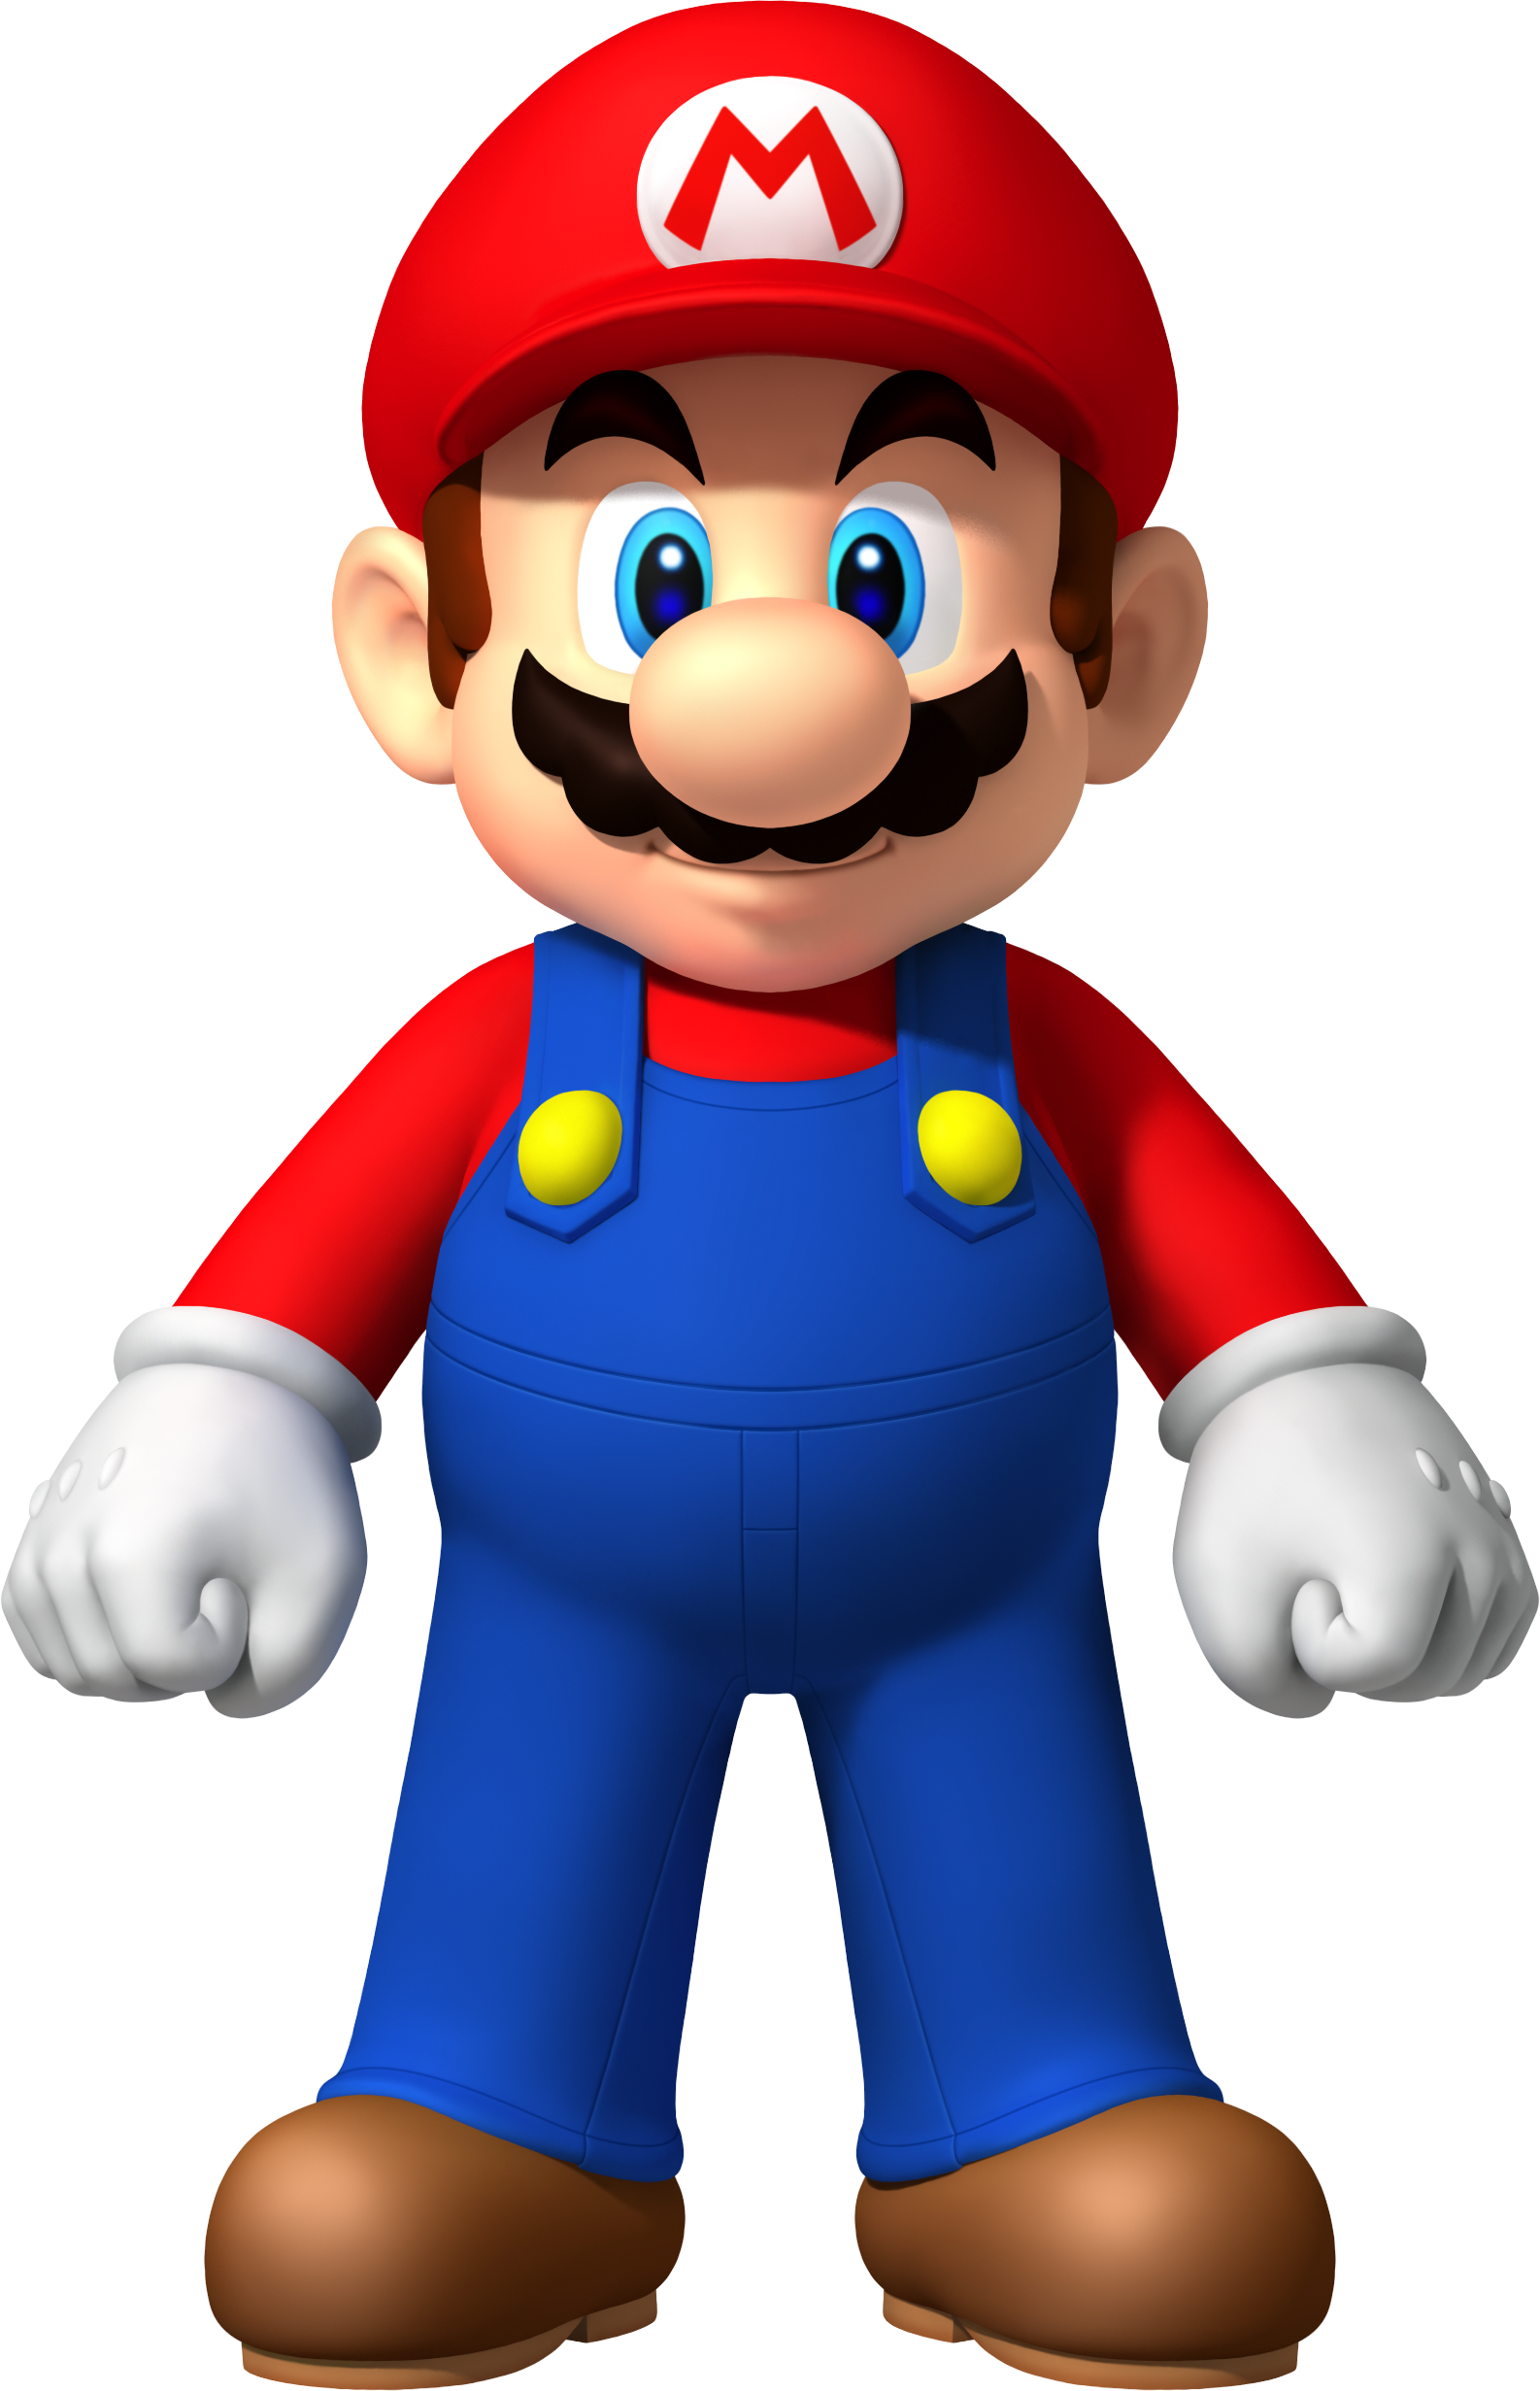 clipart download transparent mario backround #106070873